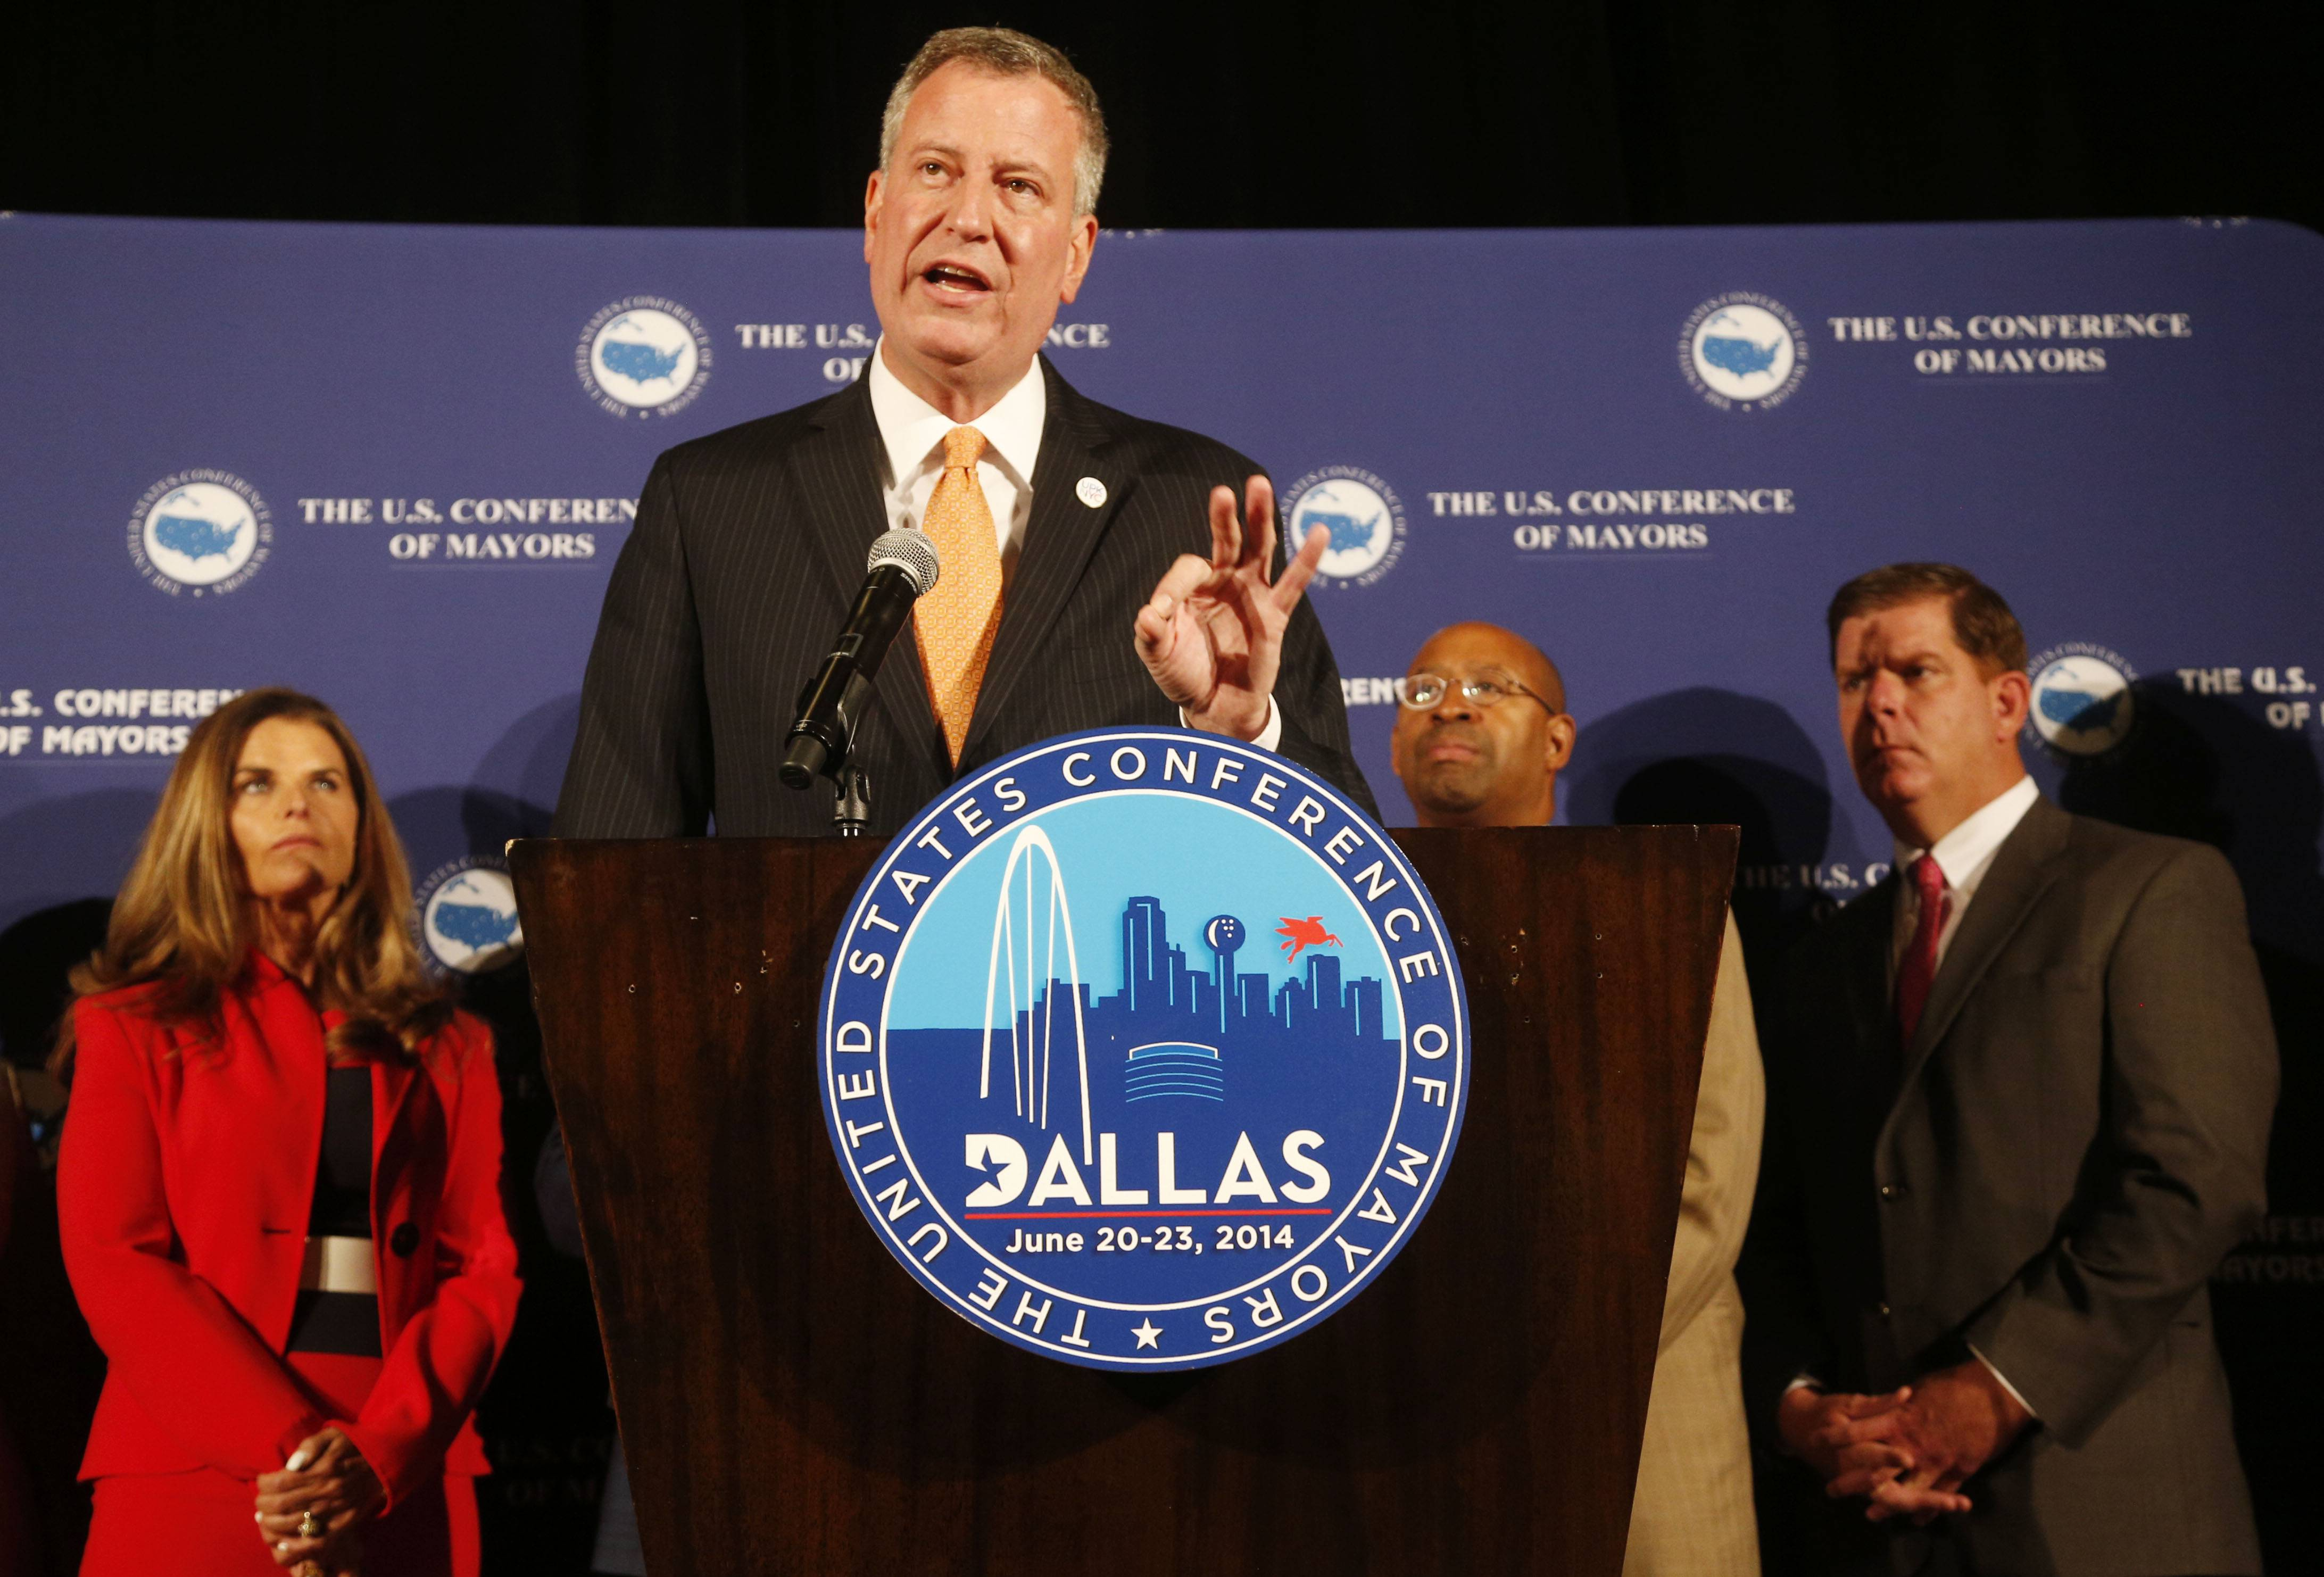 New York City mayor Bill de Blasio, speaks during a press conference announcing a new effort to focus attention on helping end inequality in American cities at the U.S. Conference of Mayors in Dallas on Sunday. Others attending were, from left, Maria Shriver, Philadelphia Mayor Michael A. Nutter and Boston Mayor Martin J. Walsh.